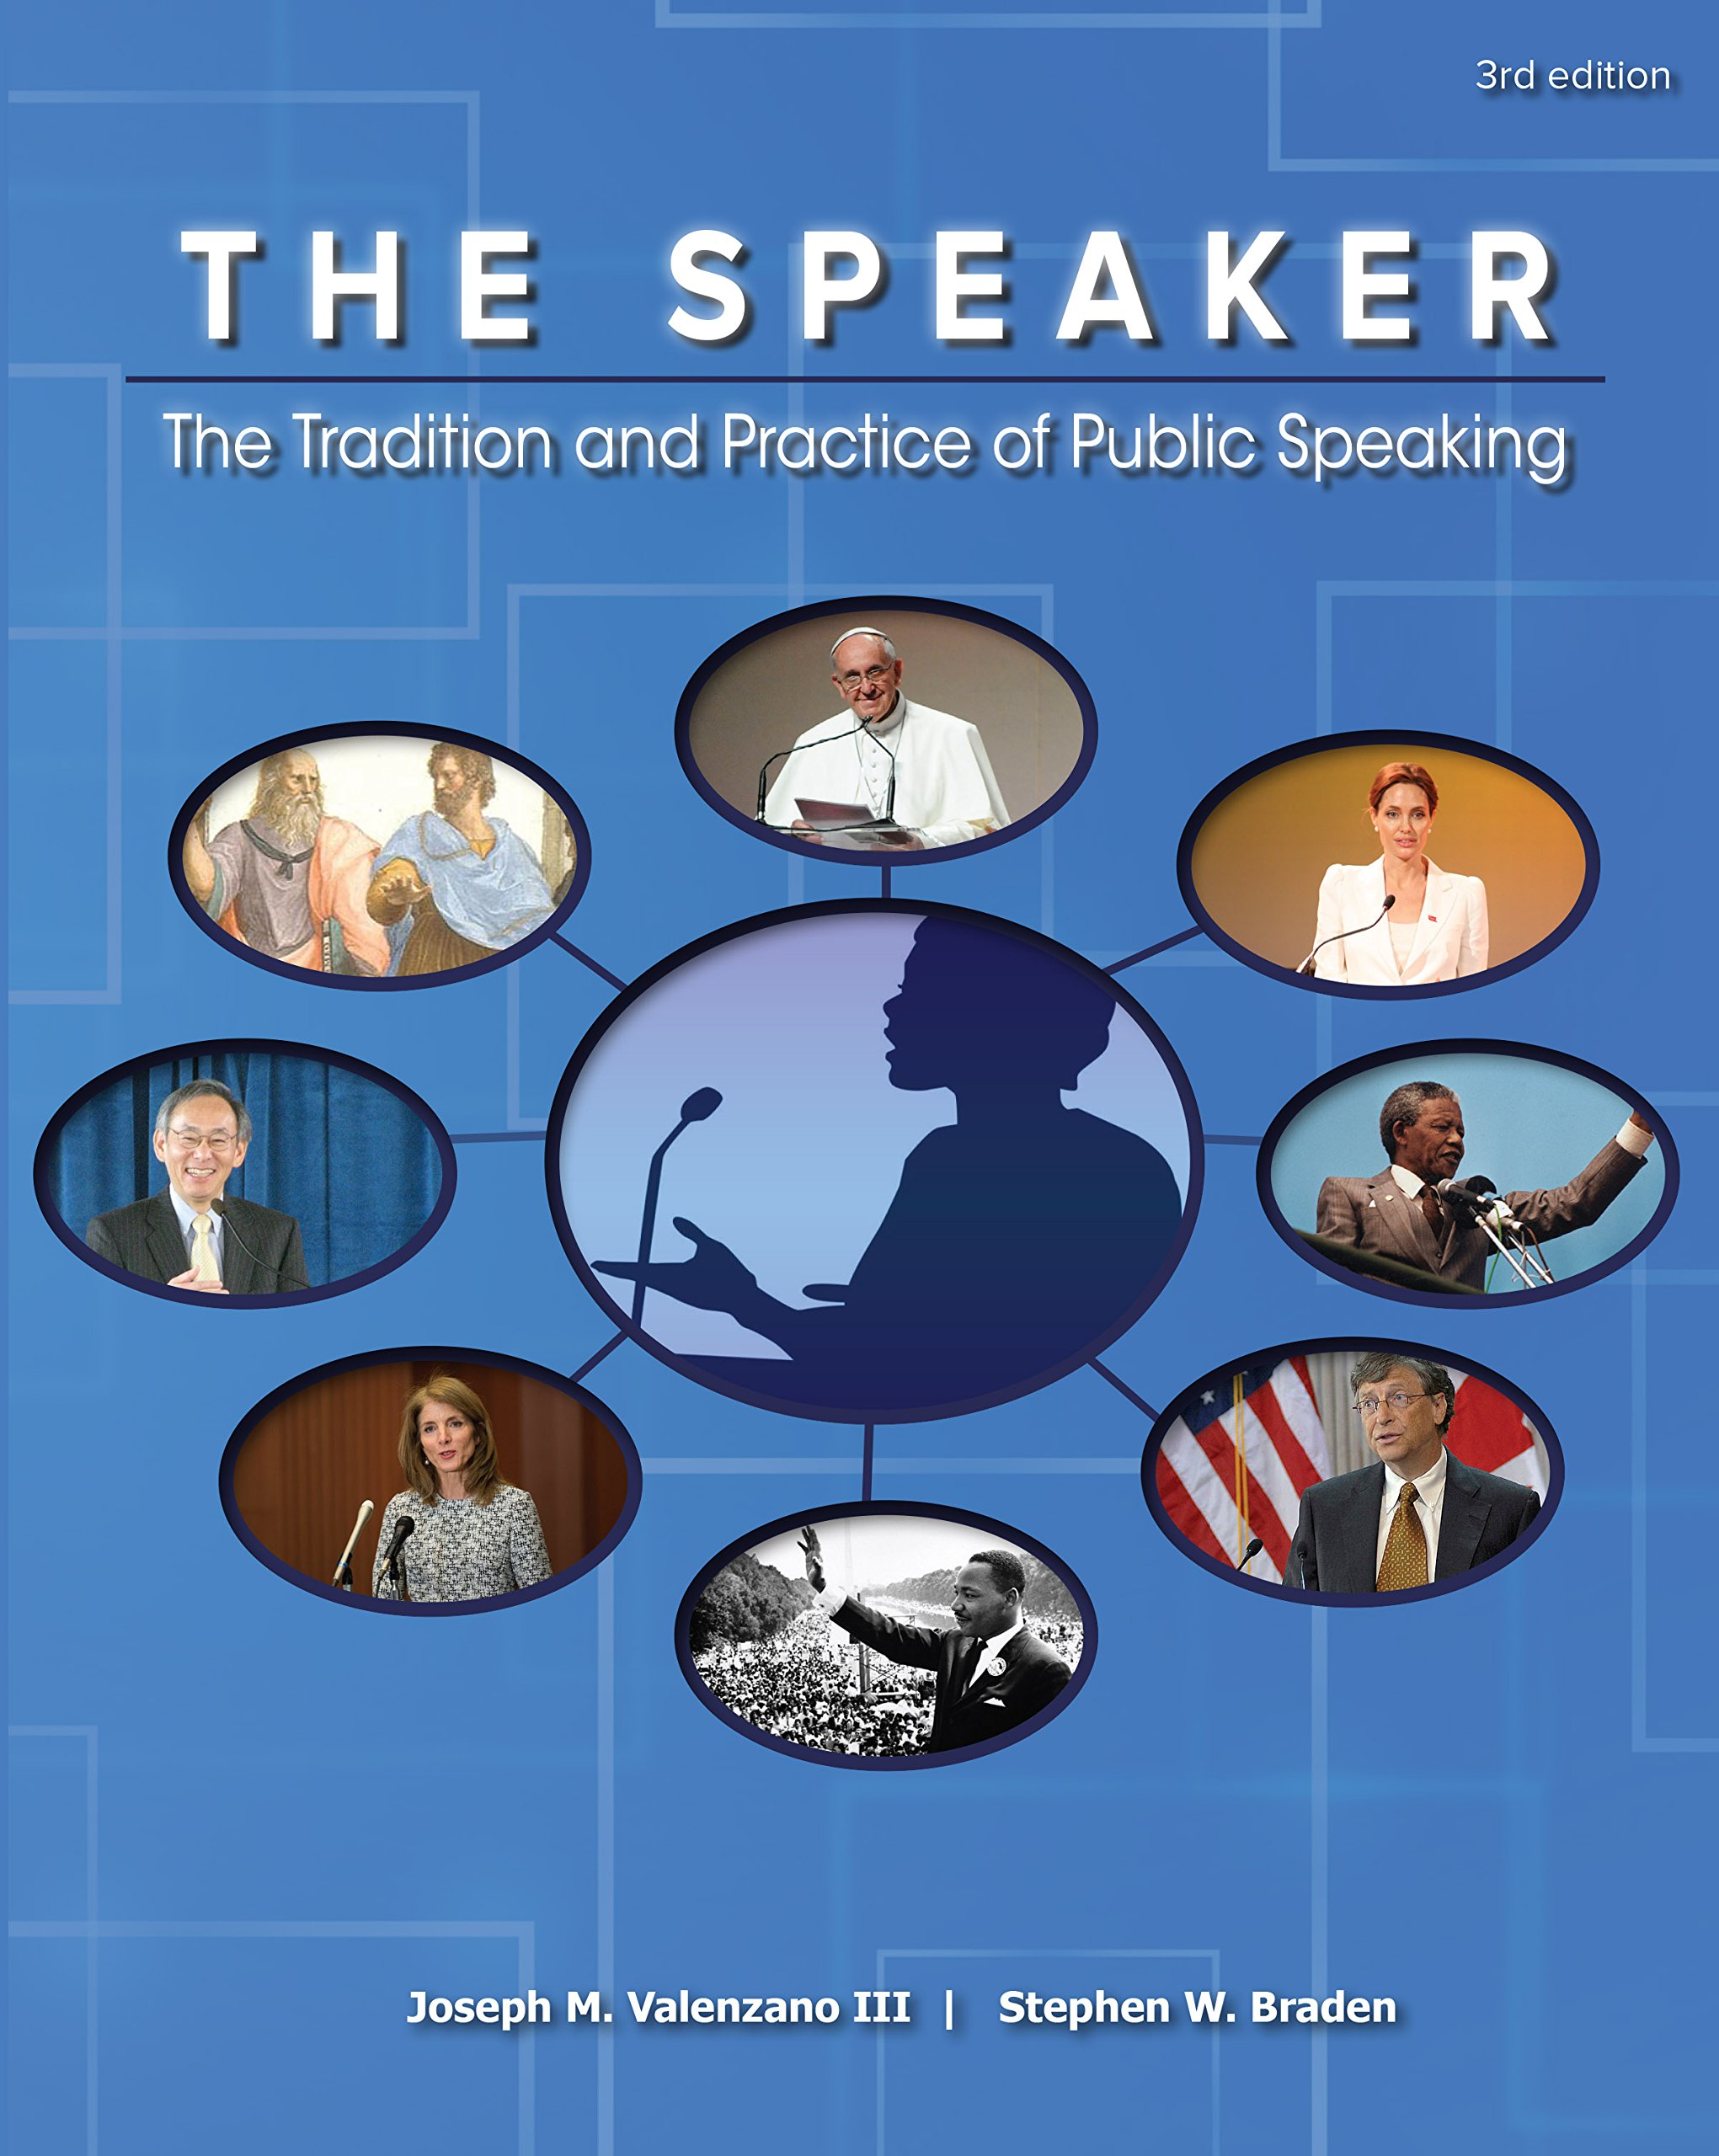 The speaker the tradition and practice of public speaking joseph m the speaker the tradition and practice of public speaking joseph m valenzano iii stephen w braden 9781598718171 amazon books fandeluxe Gallery